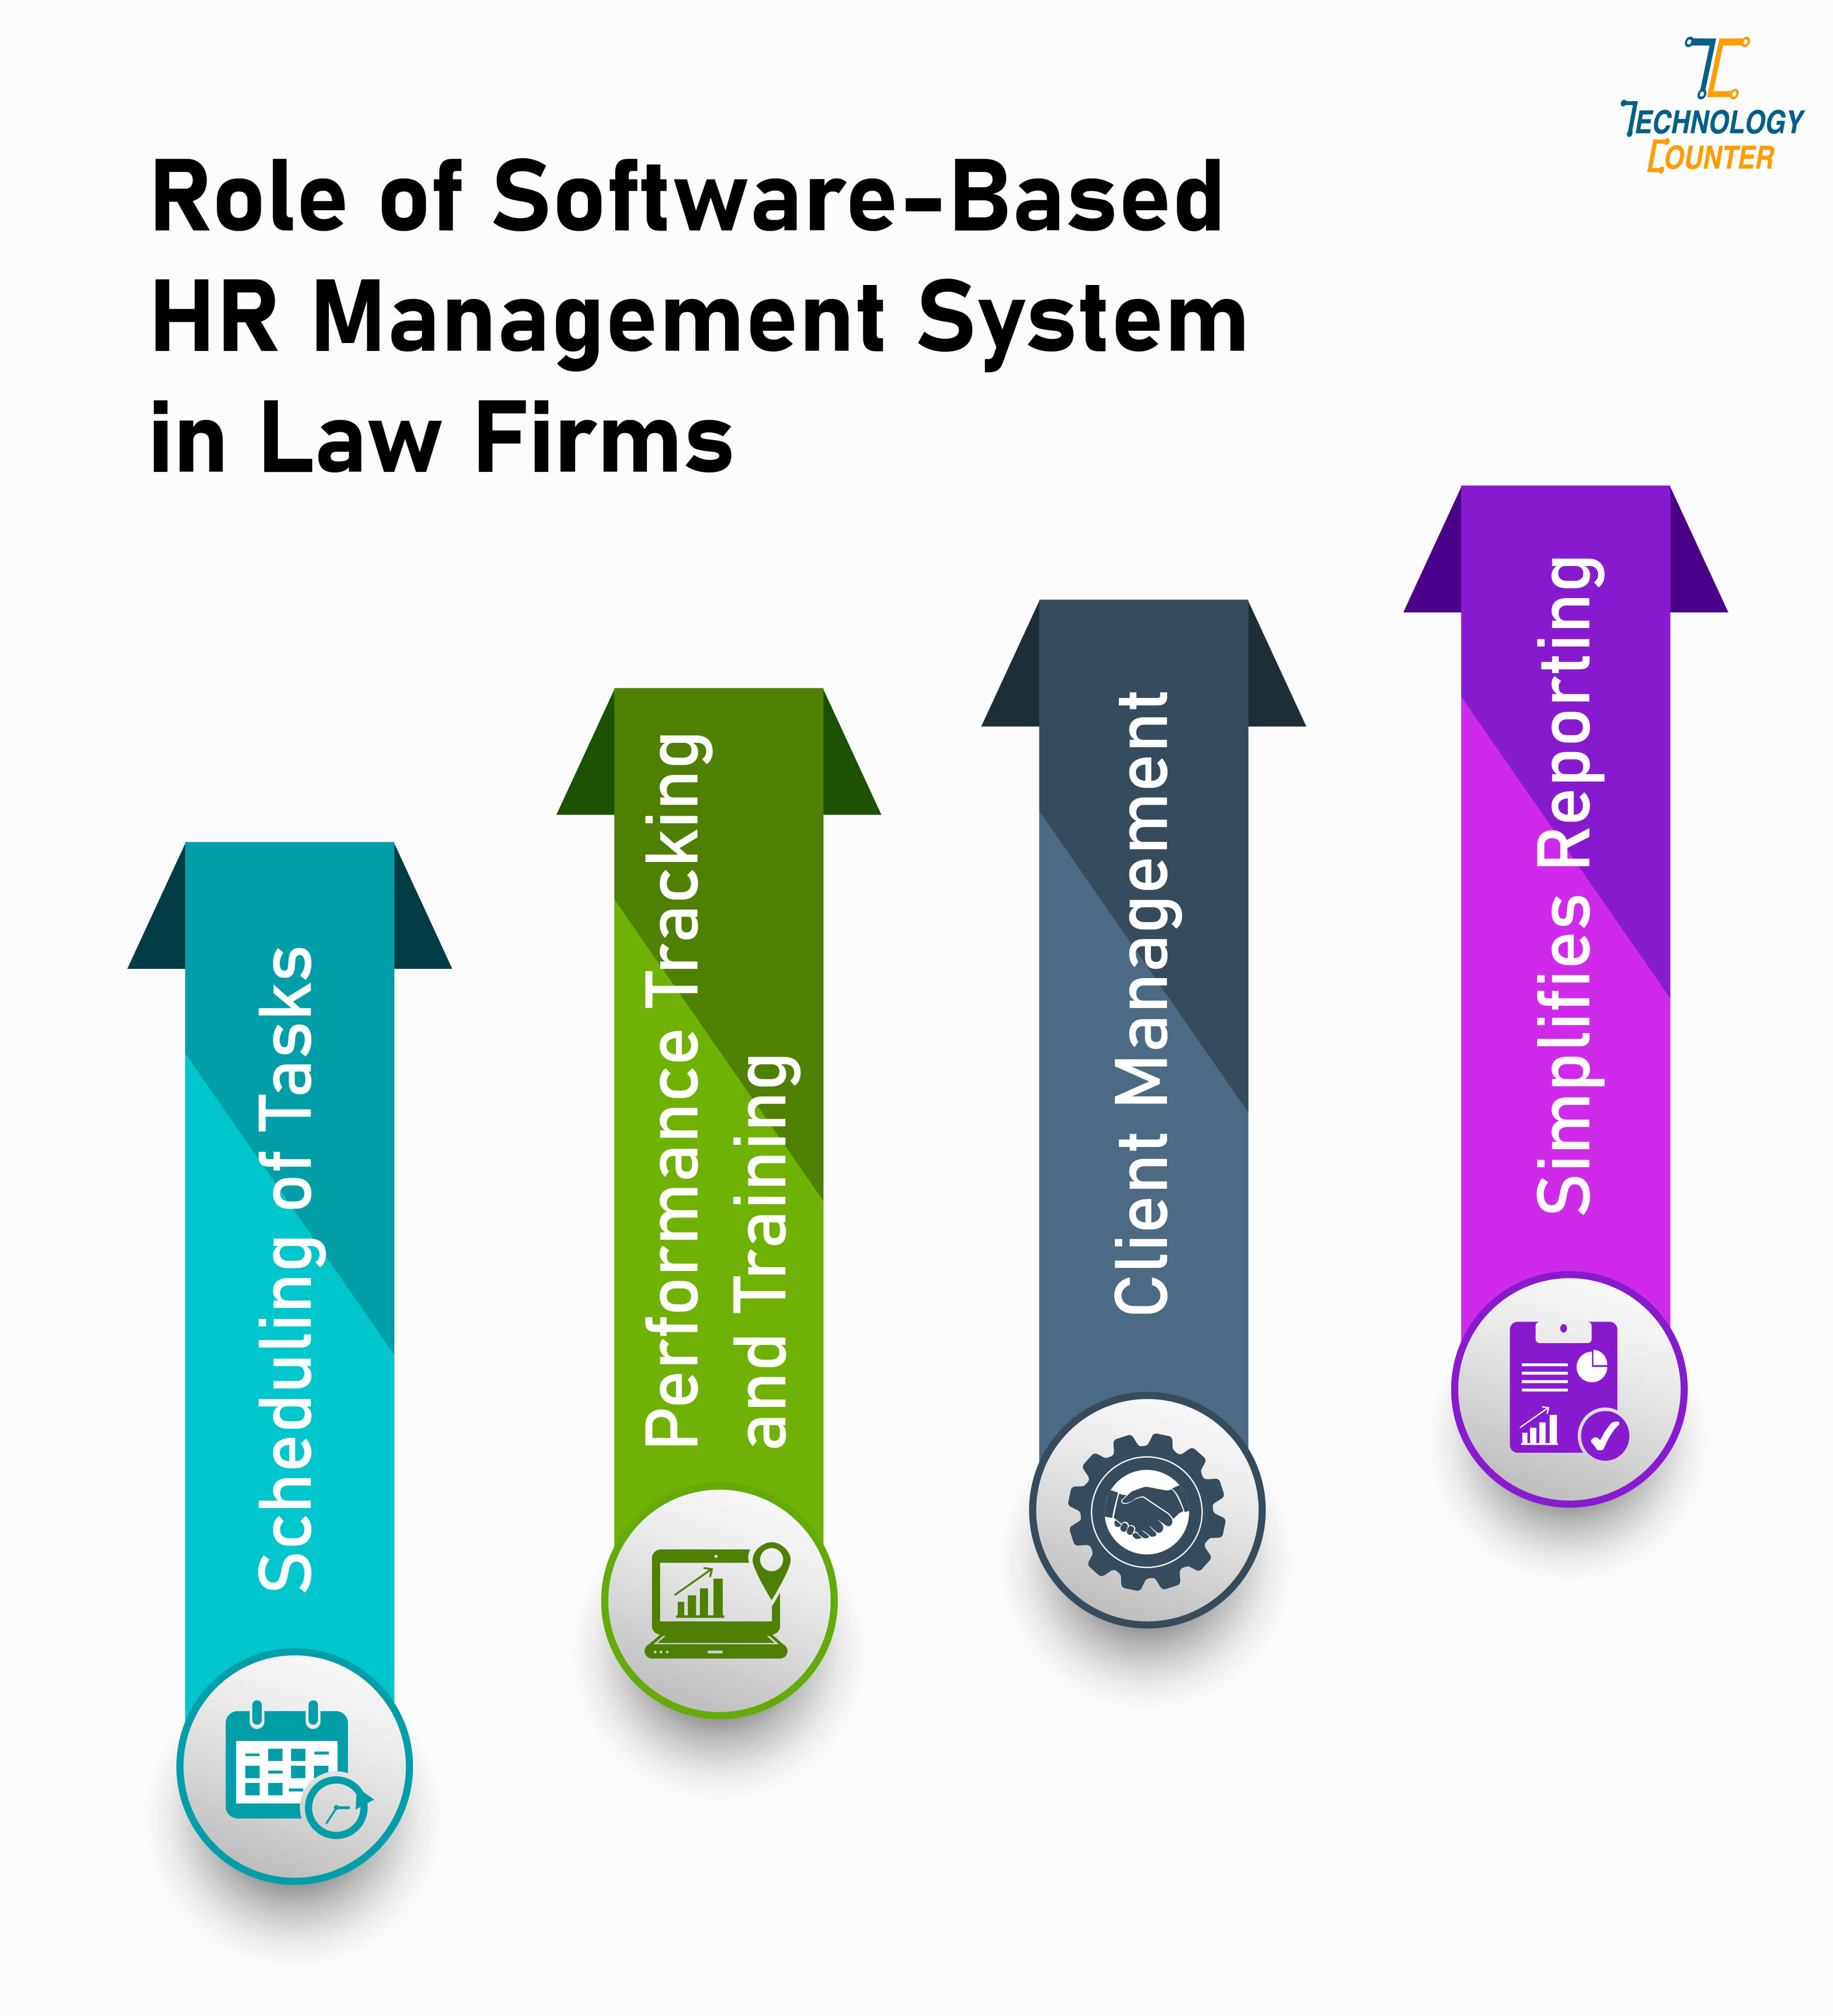 Role of Software-based HR management system in Law Firms